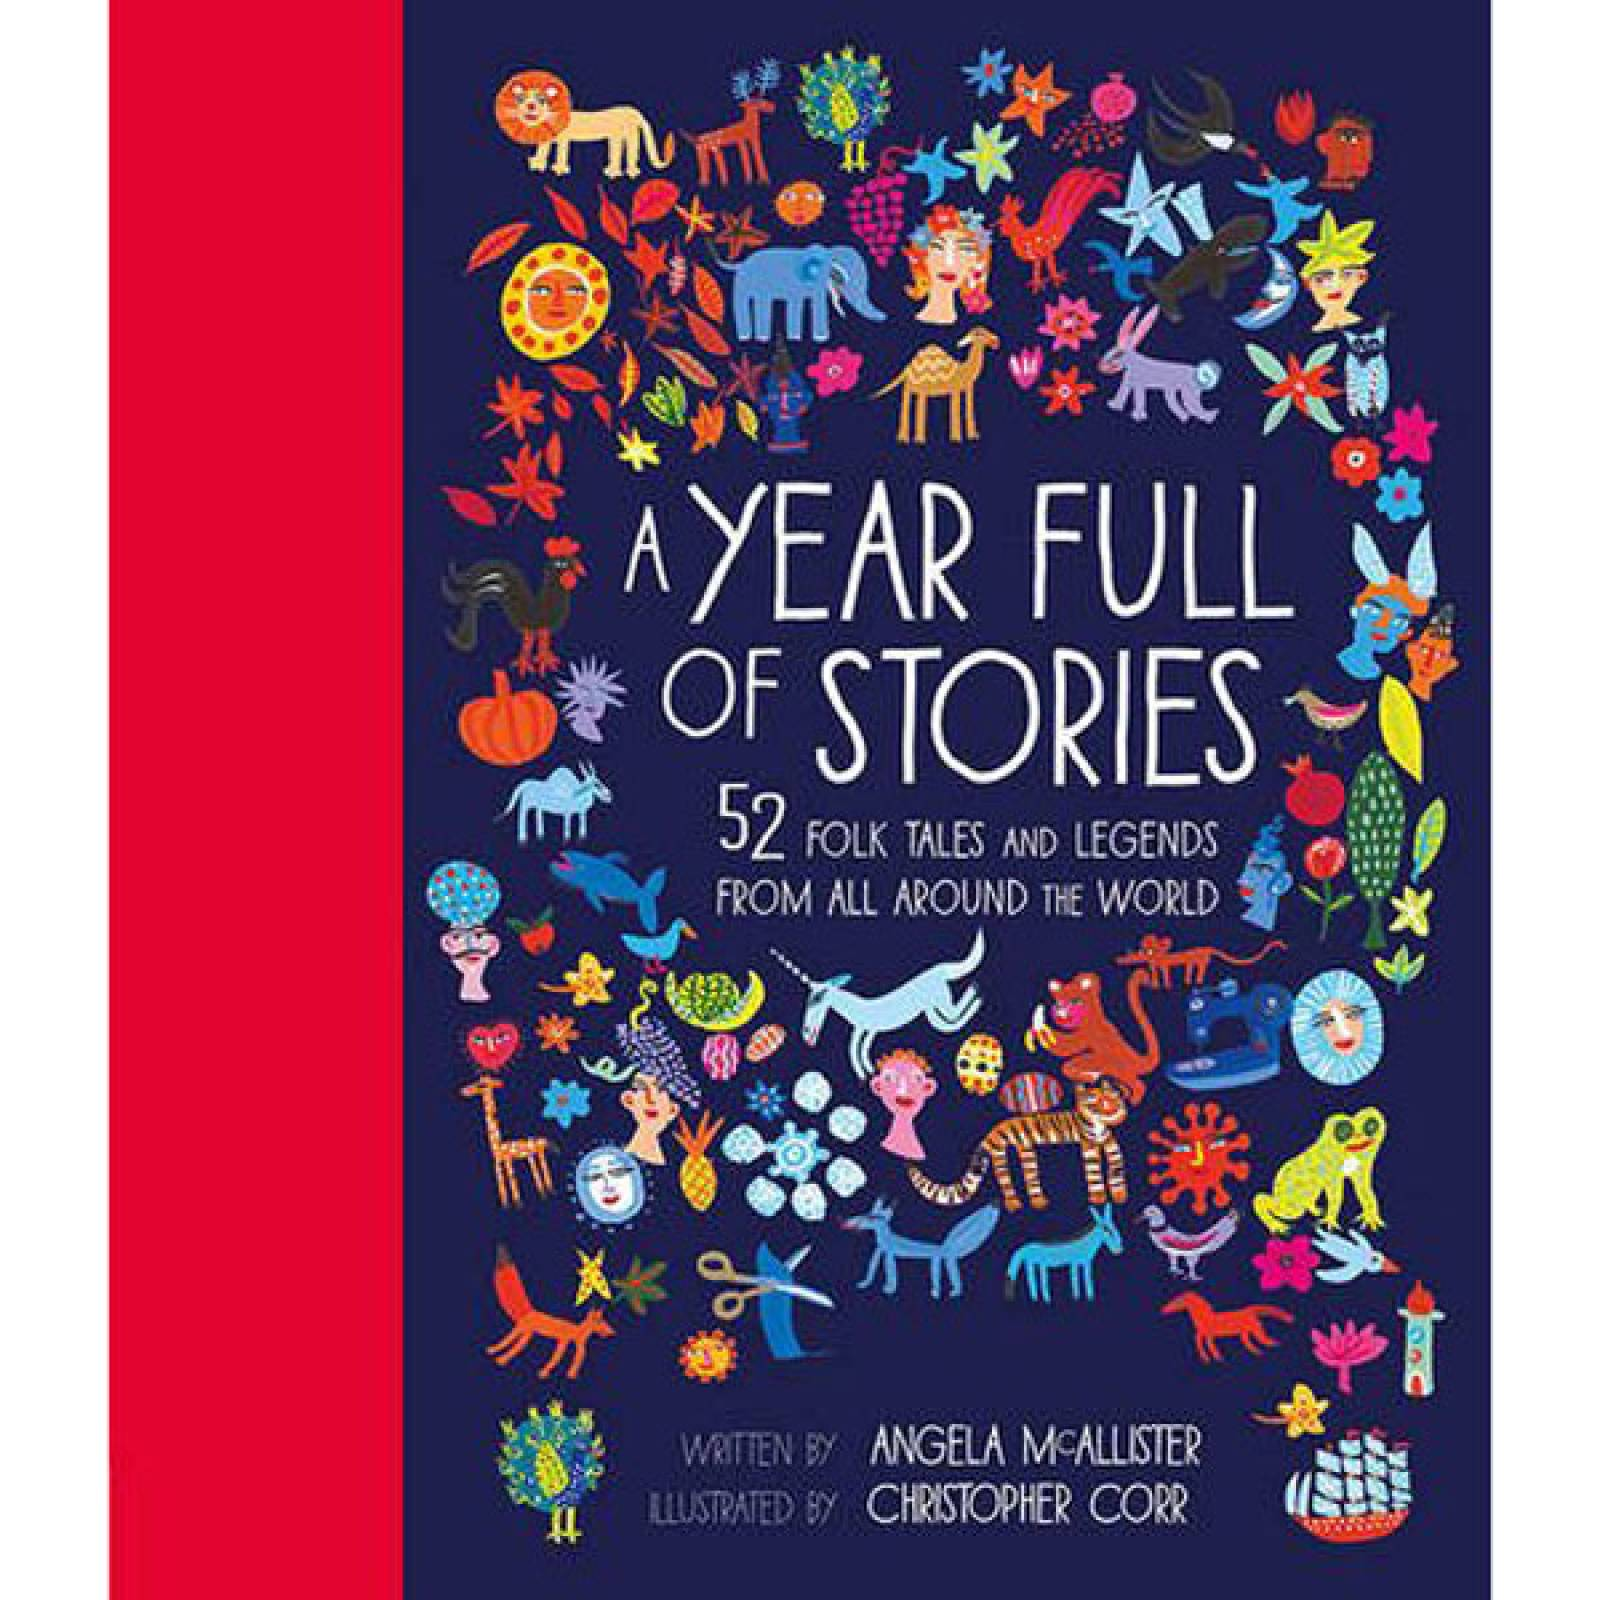 A Year Full Of Stories - 52 Folk Tales And Legends Hardback Book